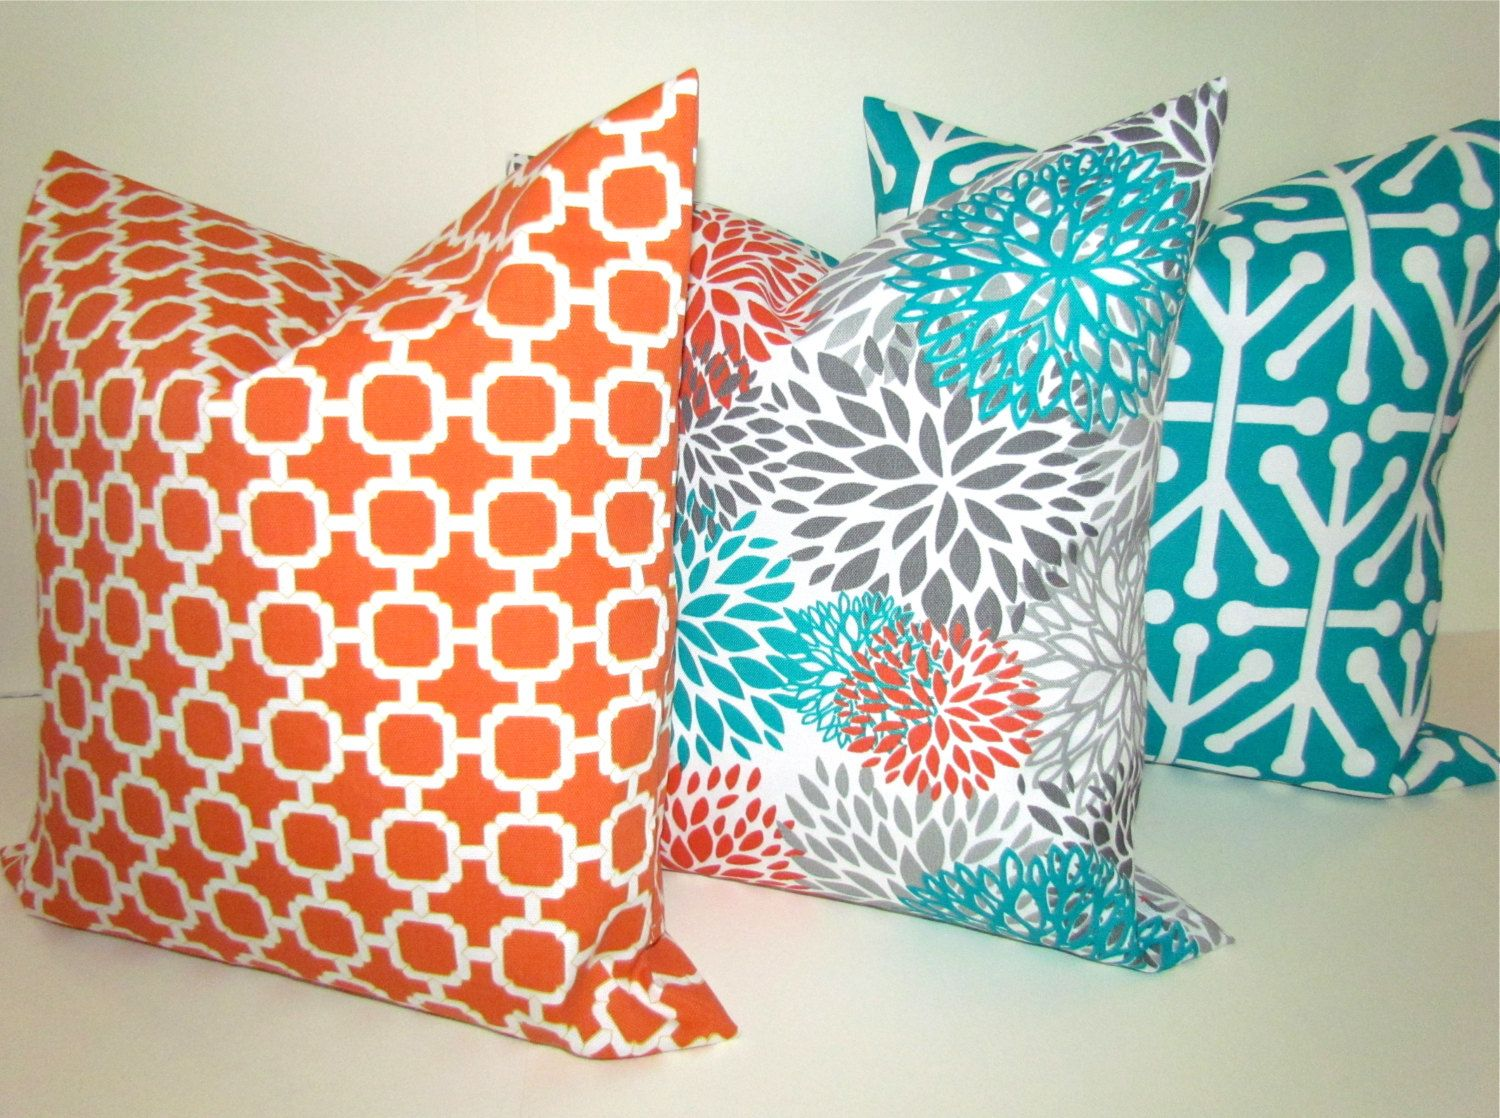 pillows set of 2 teal orange throw pillow covers 16 18 20x20 teal turquoise pillows gray throw pillow covers indoor outdoor pillows